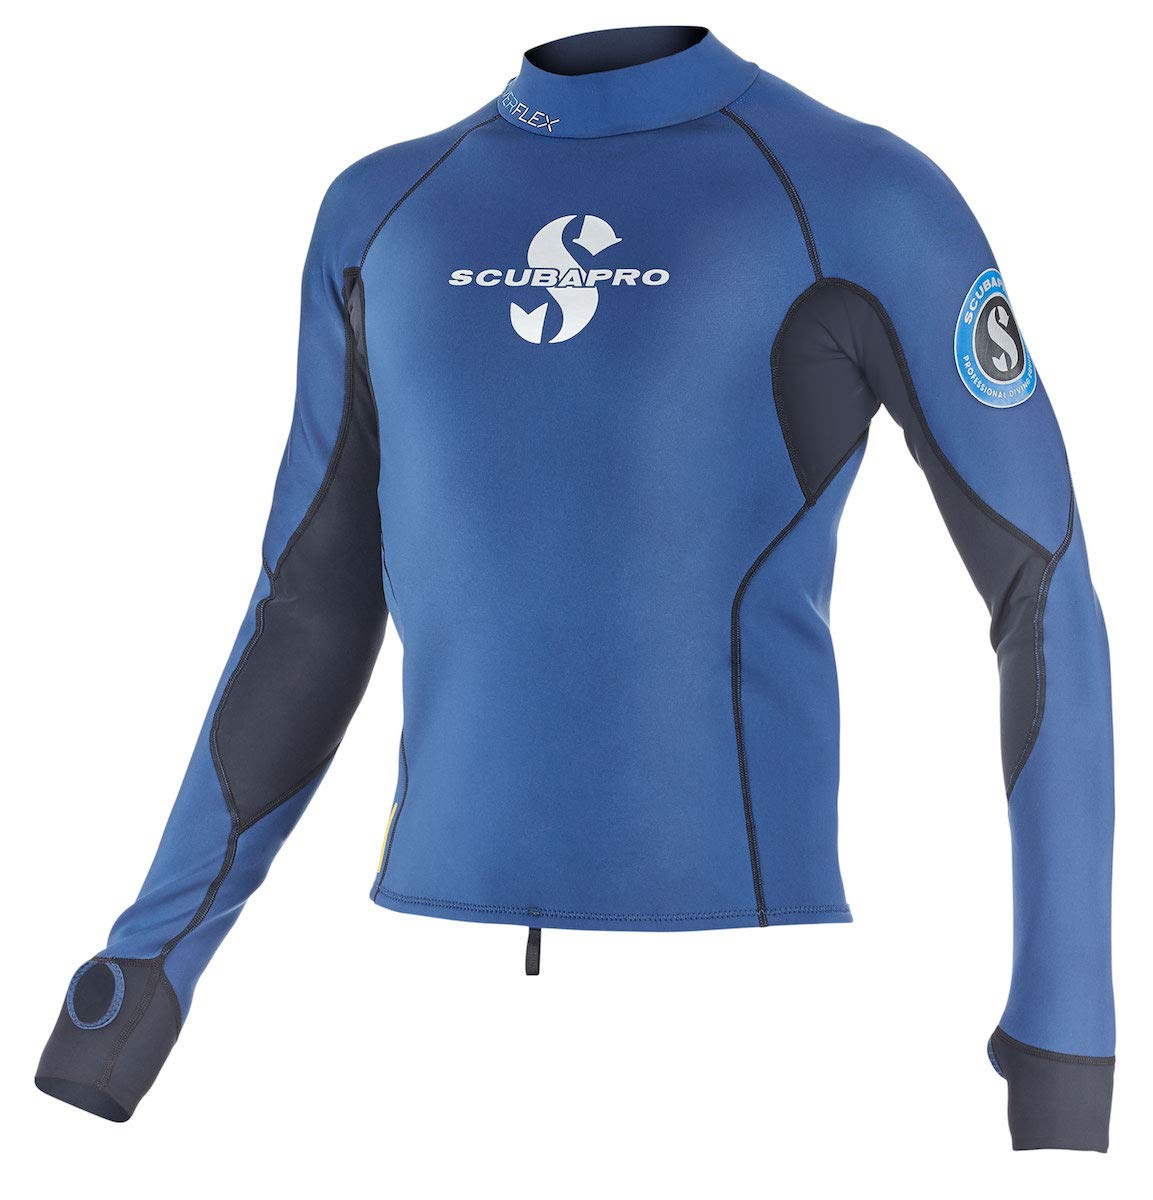 Scubapro Everflex 1.5mm Mens Long Sleeve Rash Guard Aegean, Size 3XL